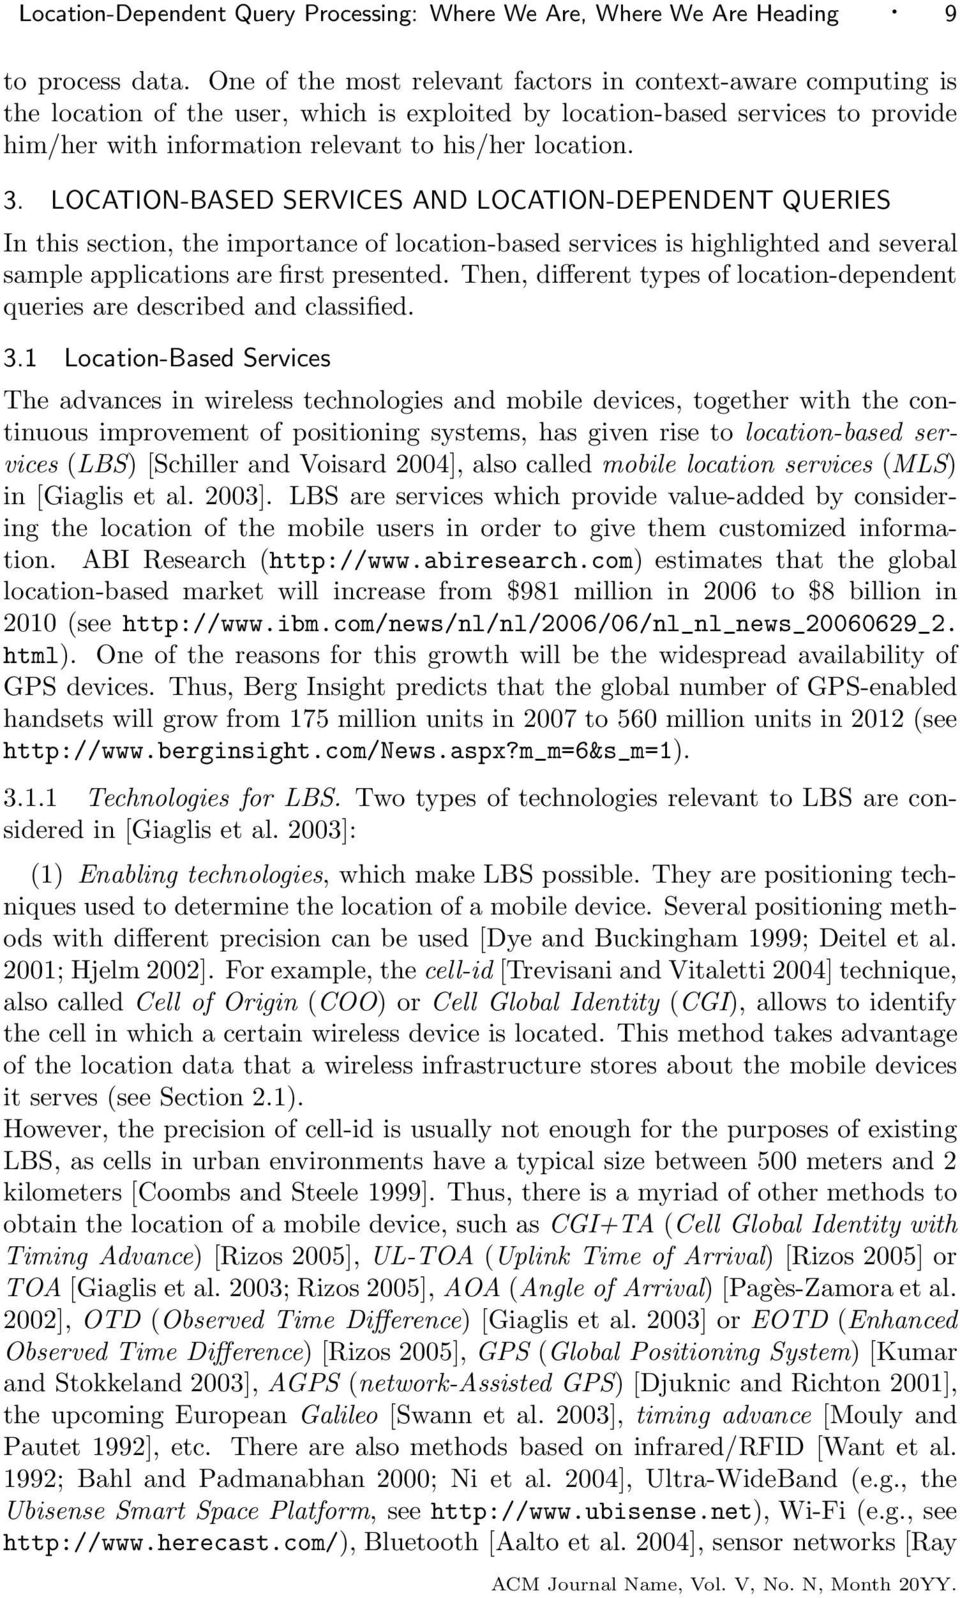 3. LOCATION-BASED SERVICES AND LOCATION-DEPENDENT QUERIES In this section, the importance of location-based services is highlighted and several sample applications are first presented.